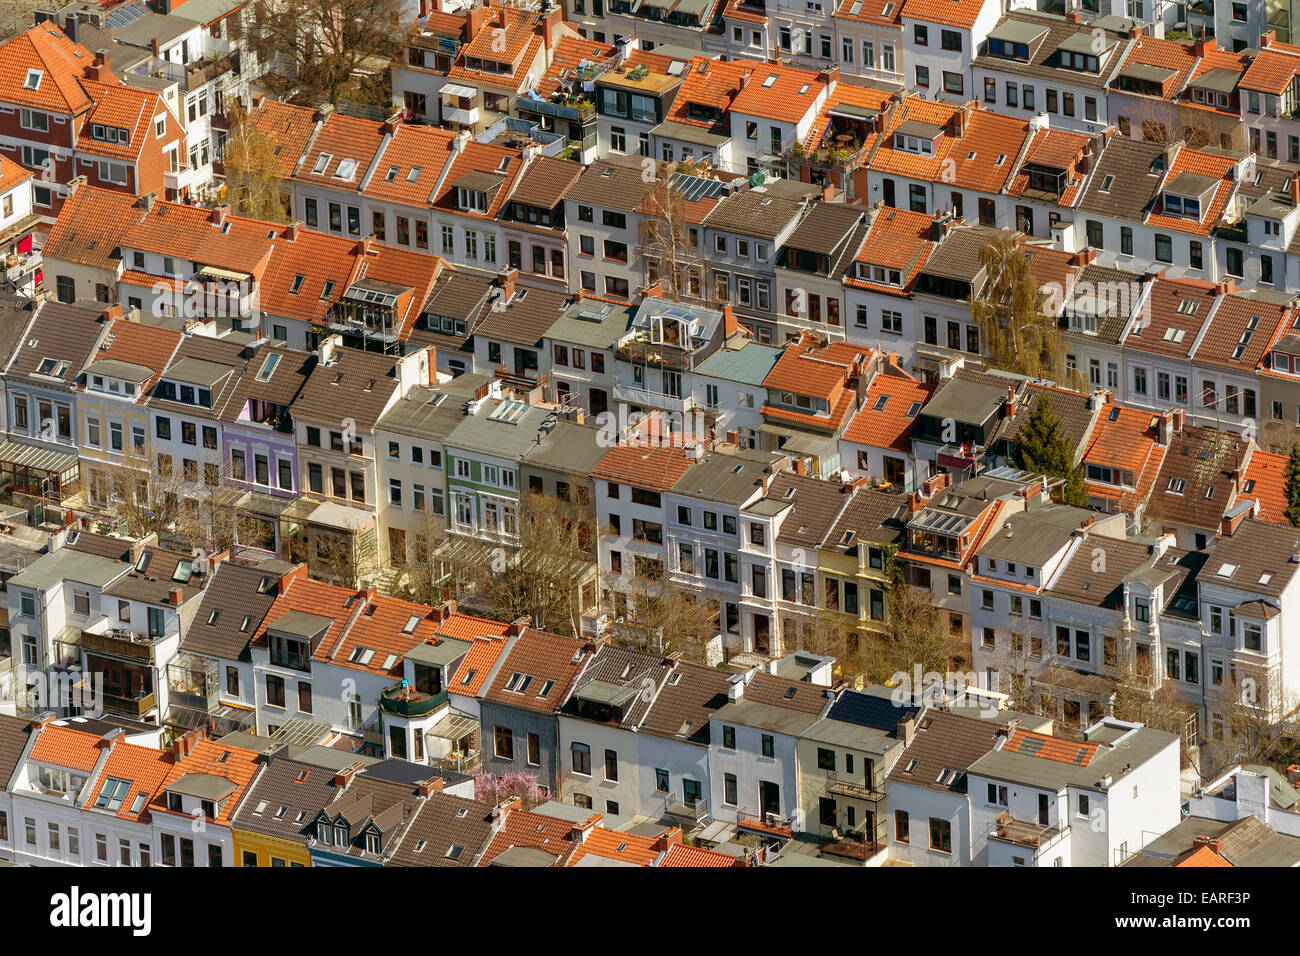 aerial view rows of houses in the findorff quarter bremen bremen stock photo 75504794 alamy. Black Bedroom Furniture Sets. Home Design Ideas